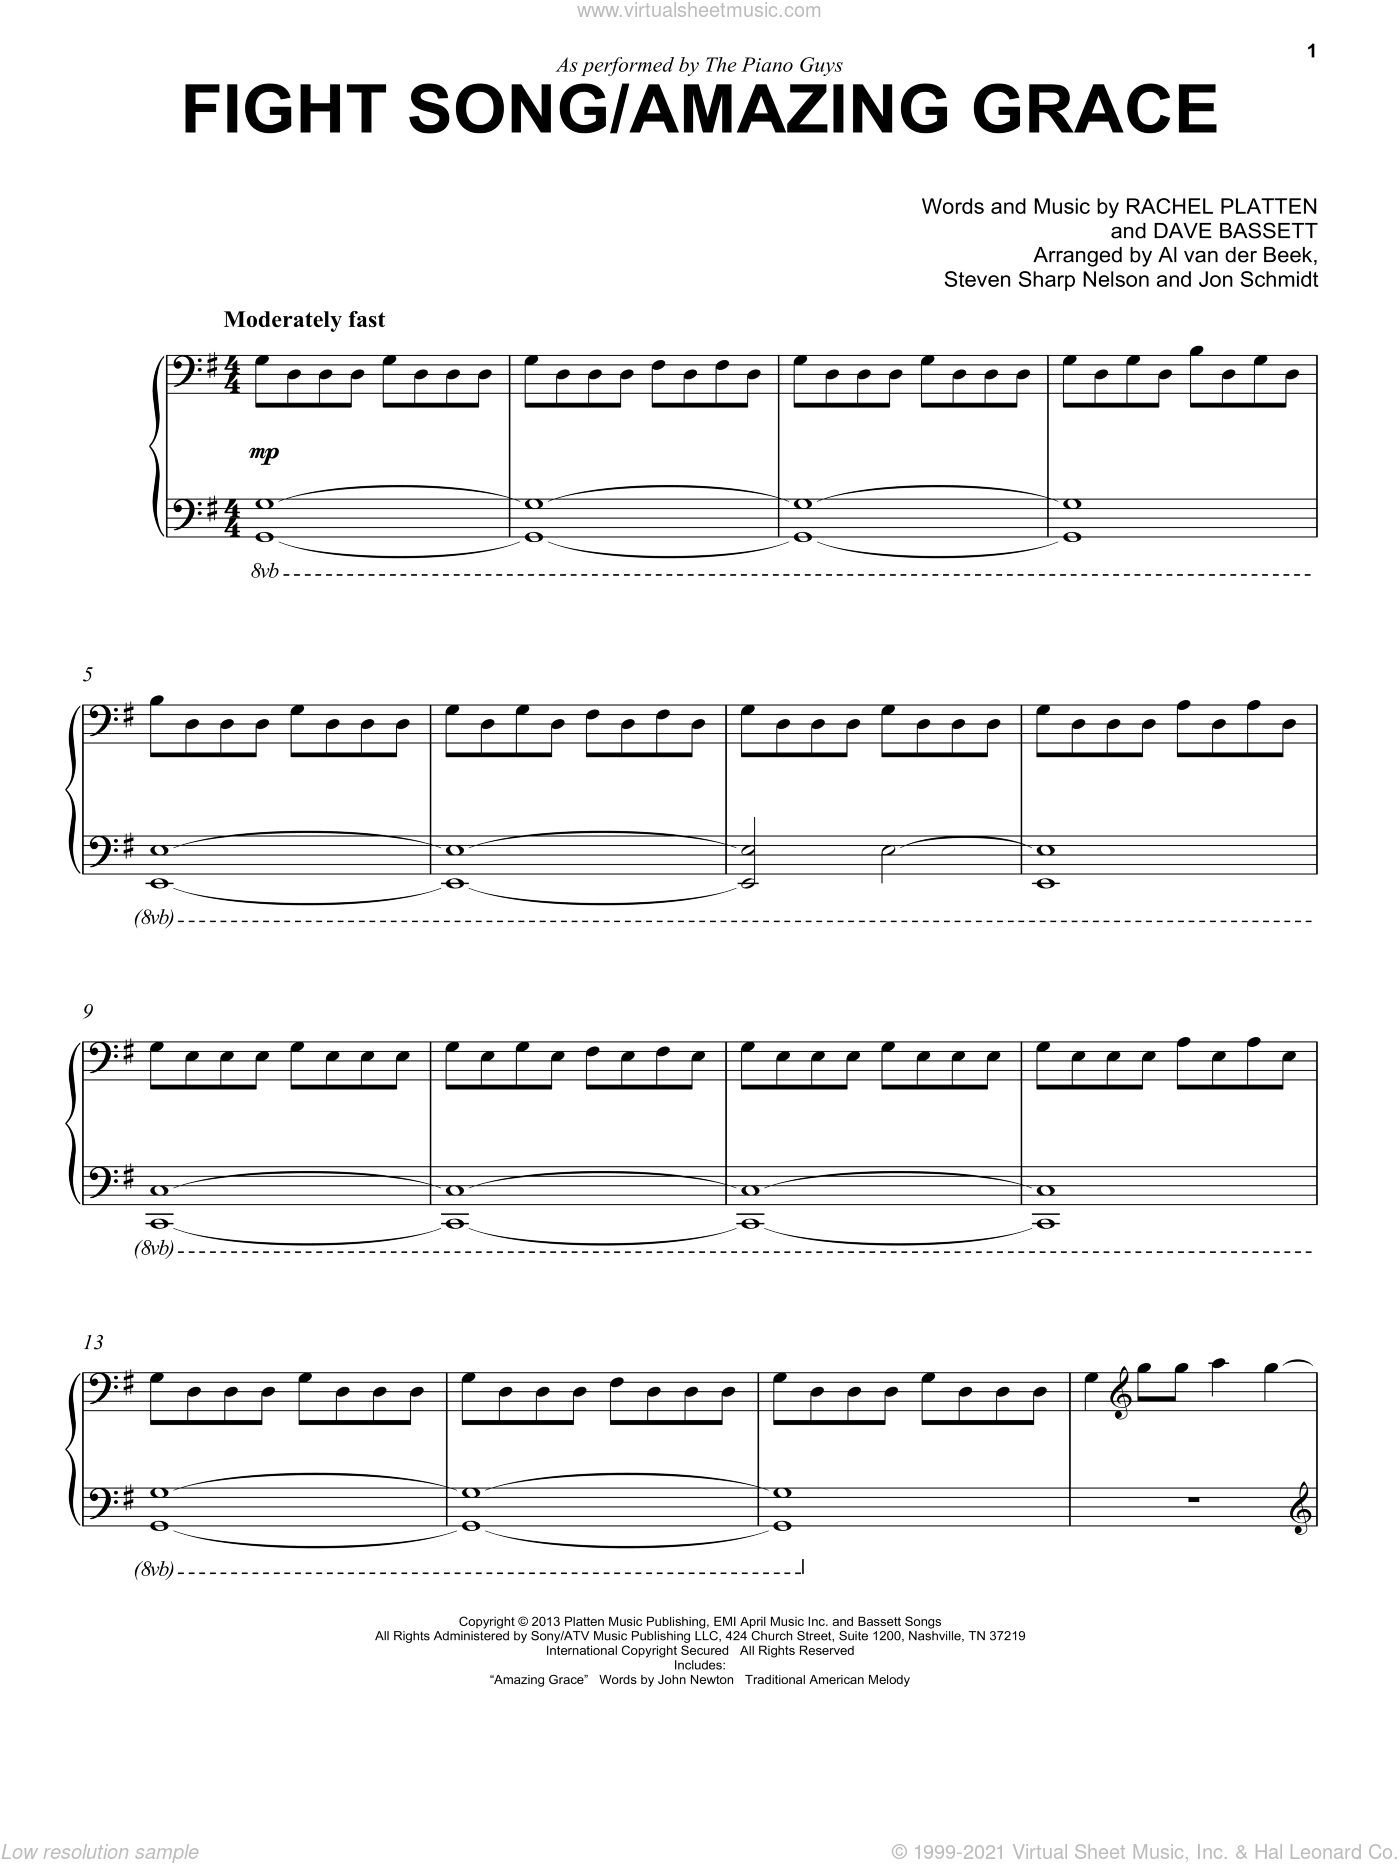 Fight Song sheet music for piano solo by Dave Bassett, The Piano Guys and Rachel Platten. Score Image Preview.